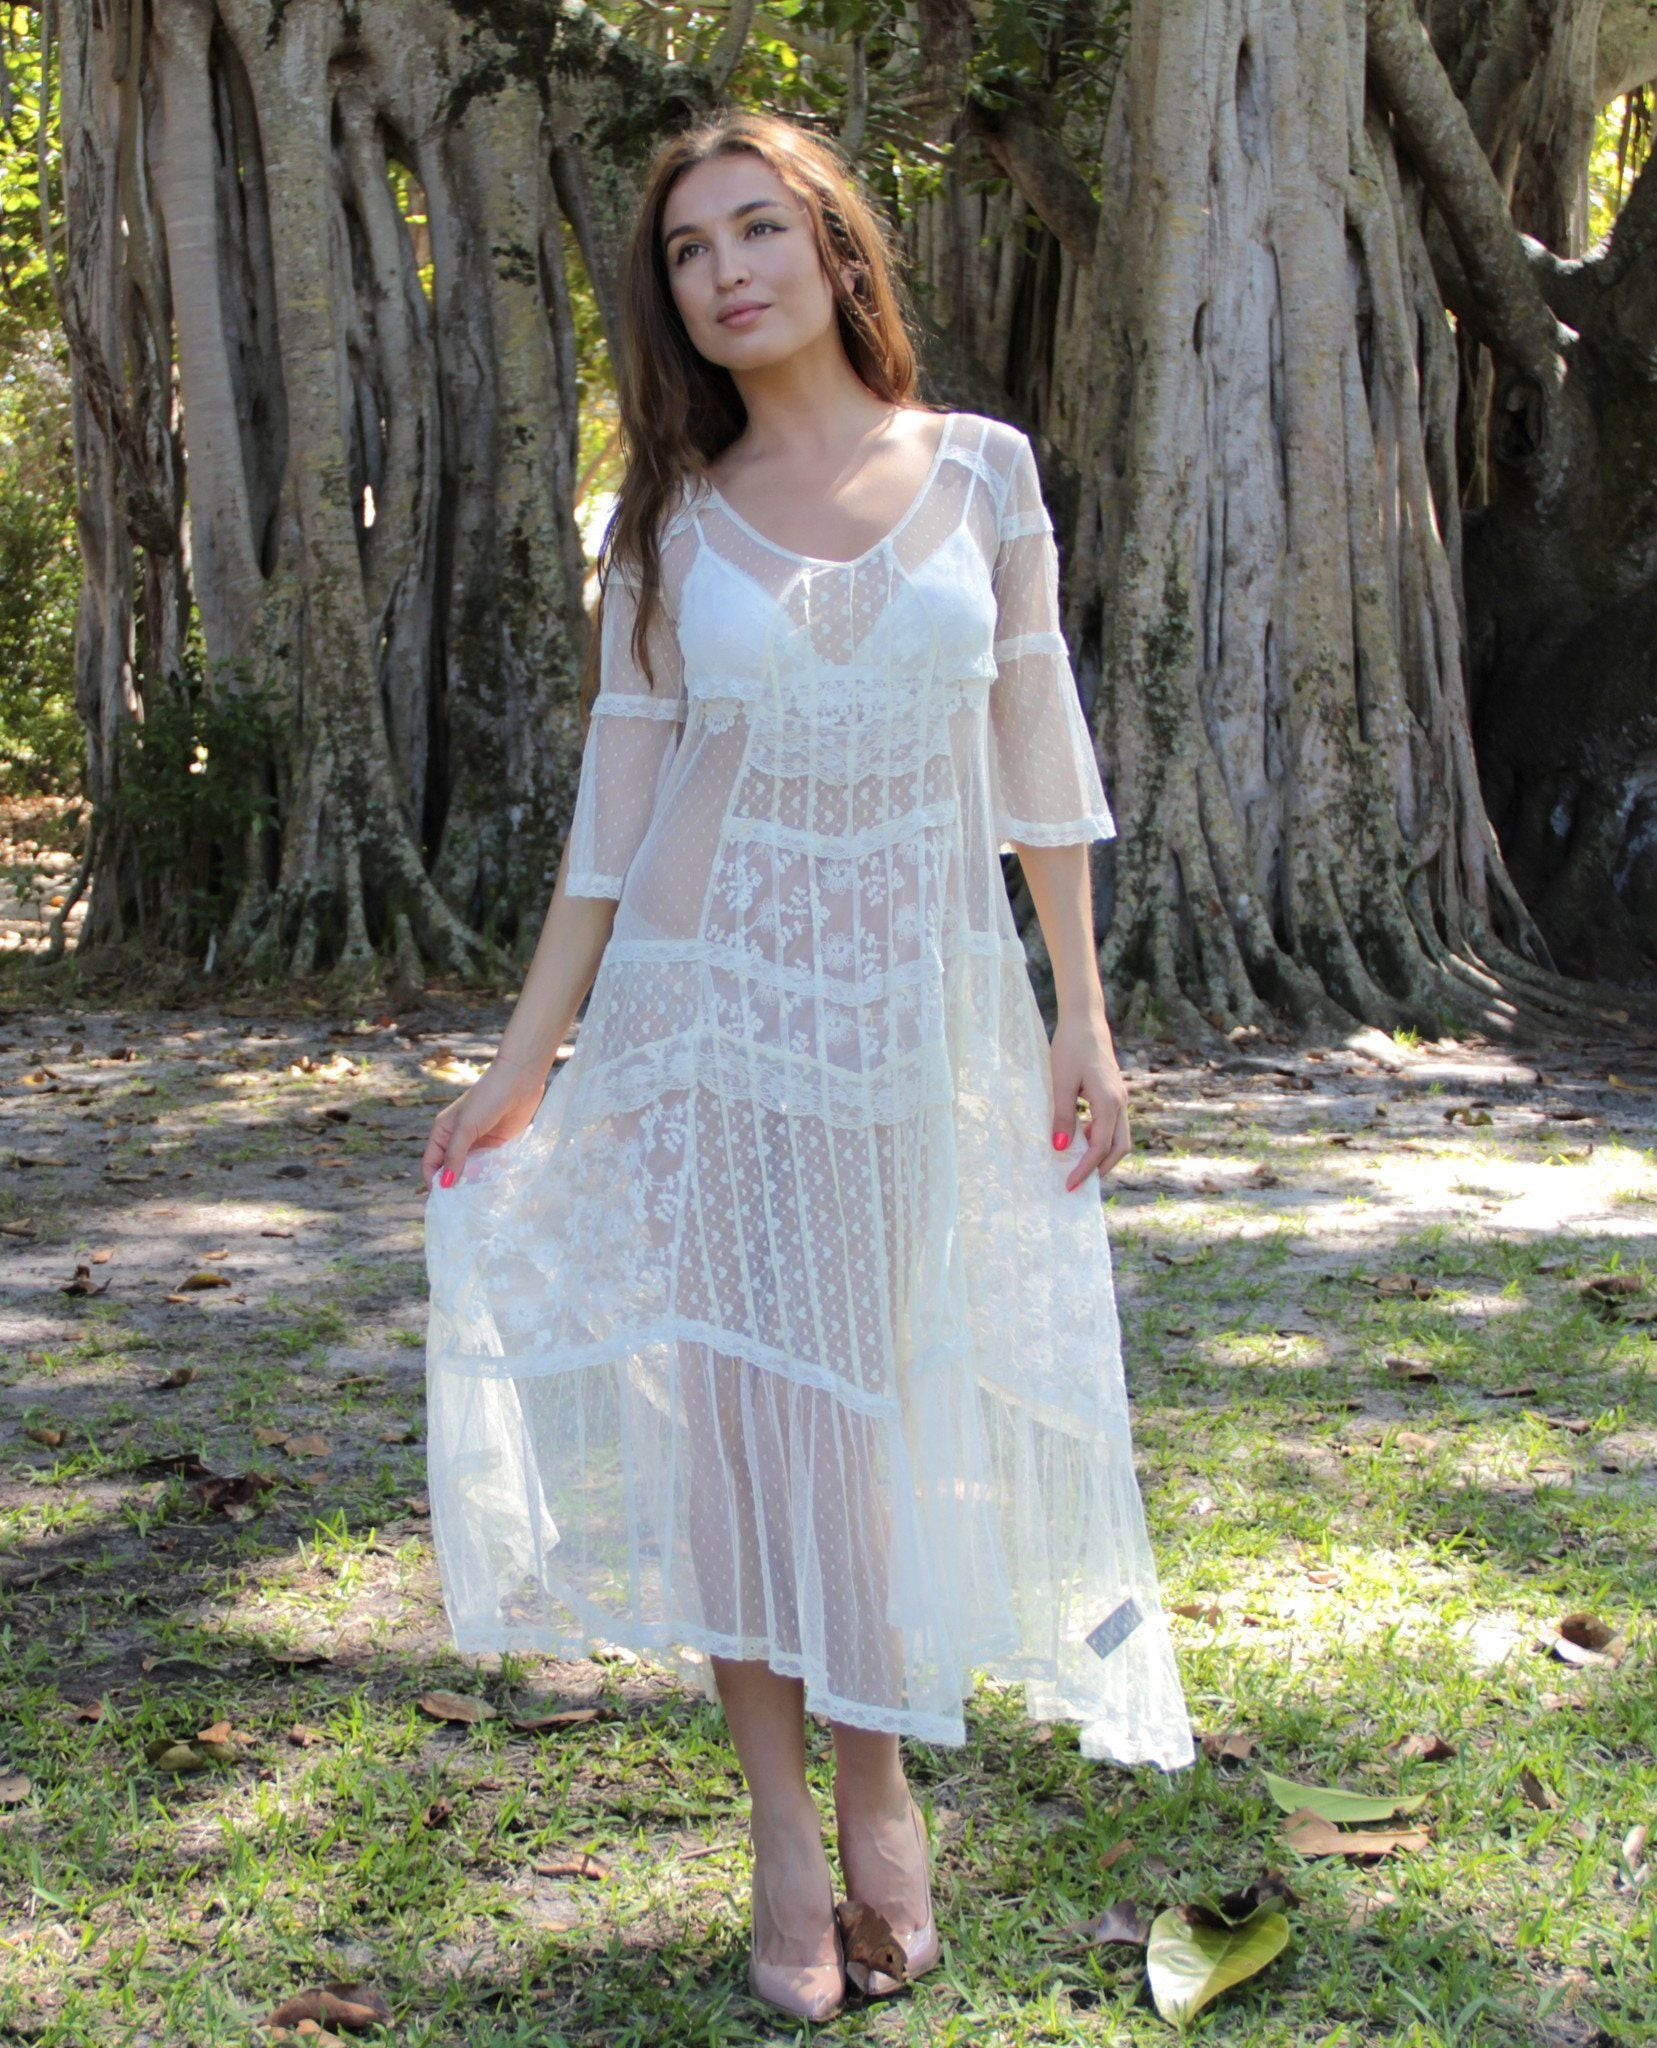 Not so Innocent Lace Dress - BOCALECHE - 1